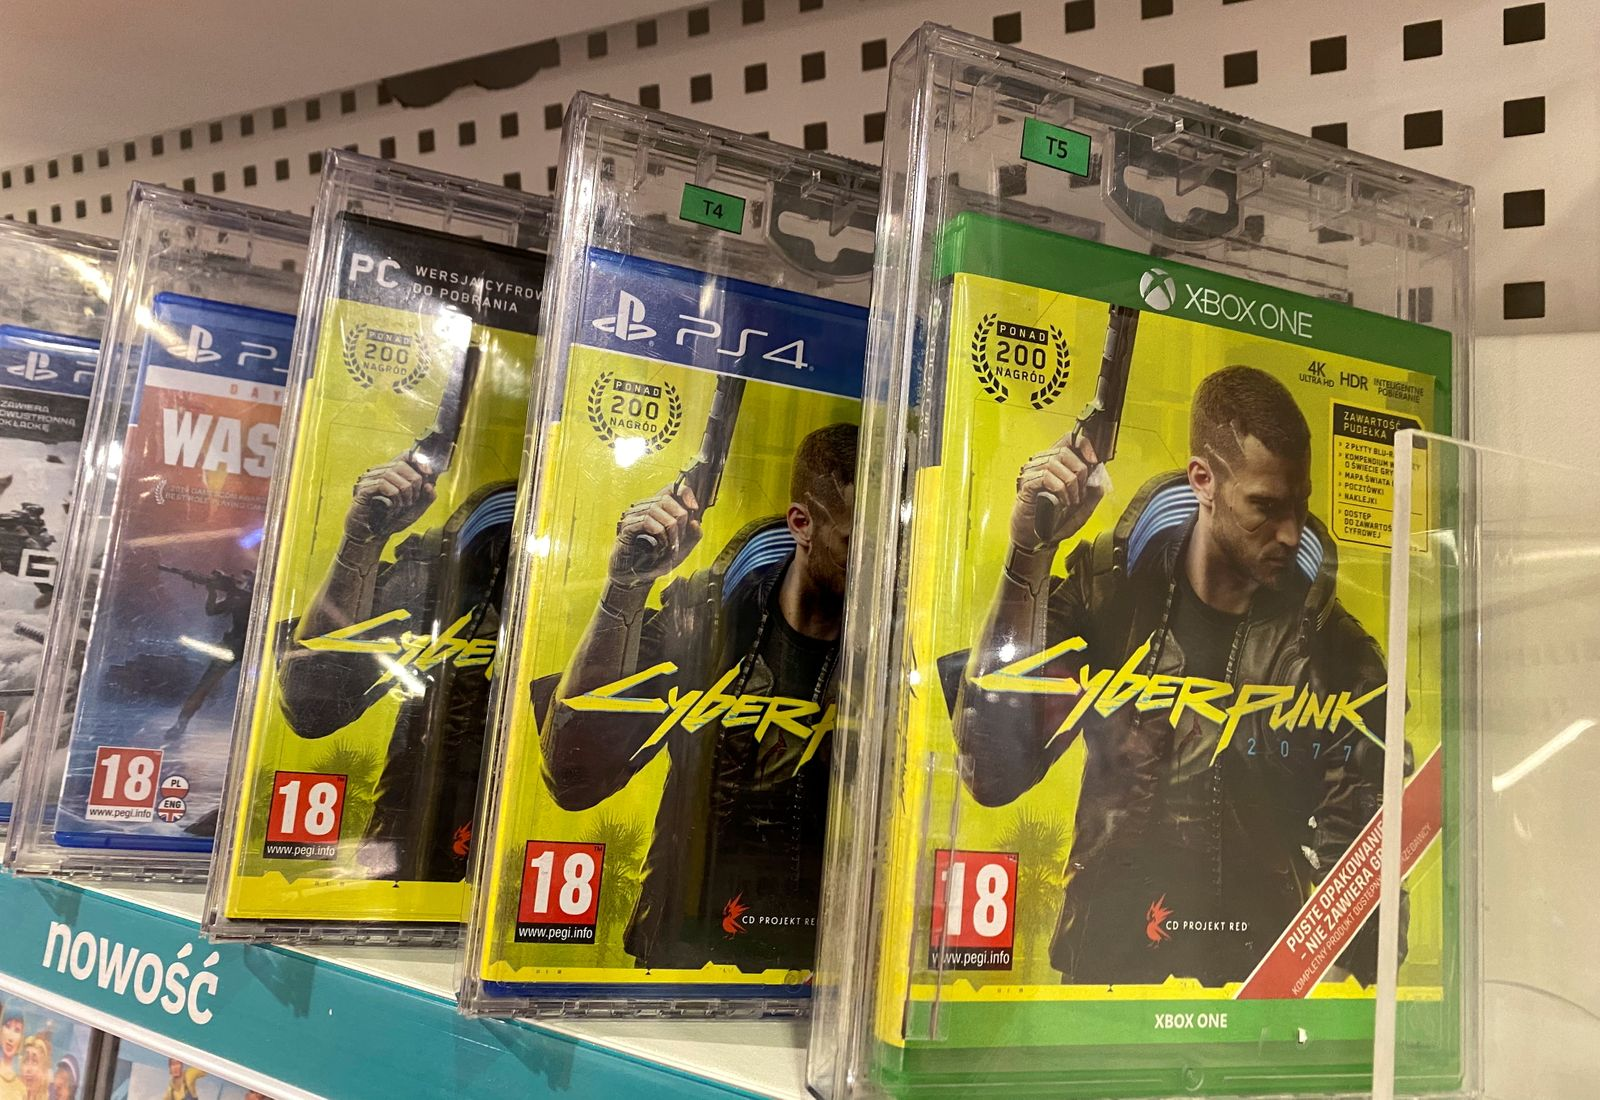 Boxes with CD Projekt's game Cyberpunk 2077 are displayed in Warsaw